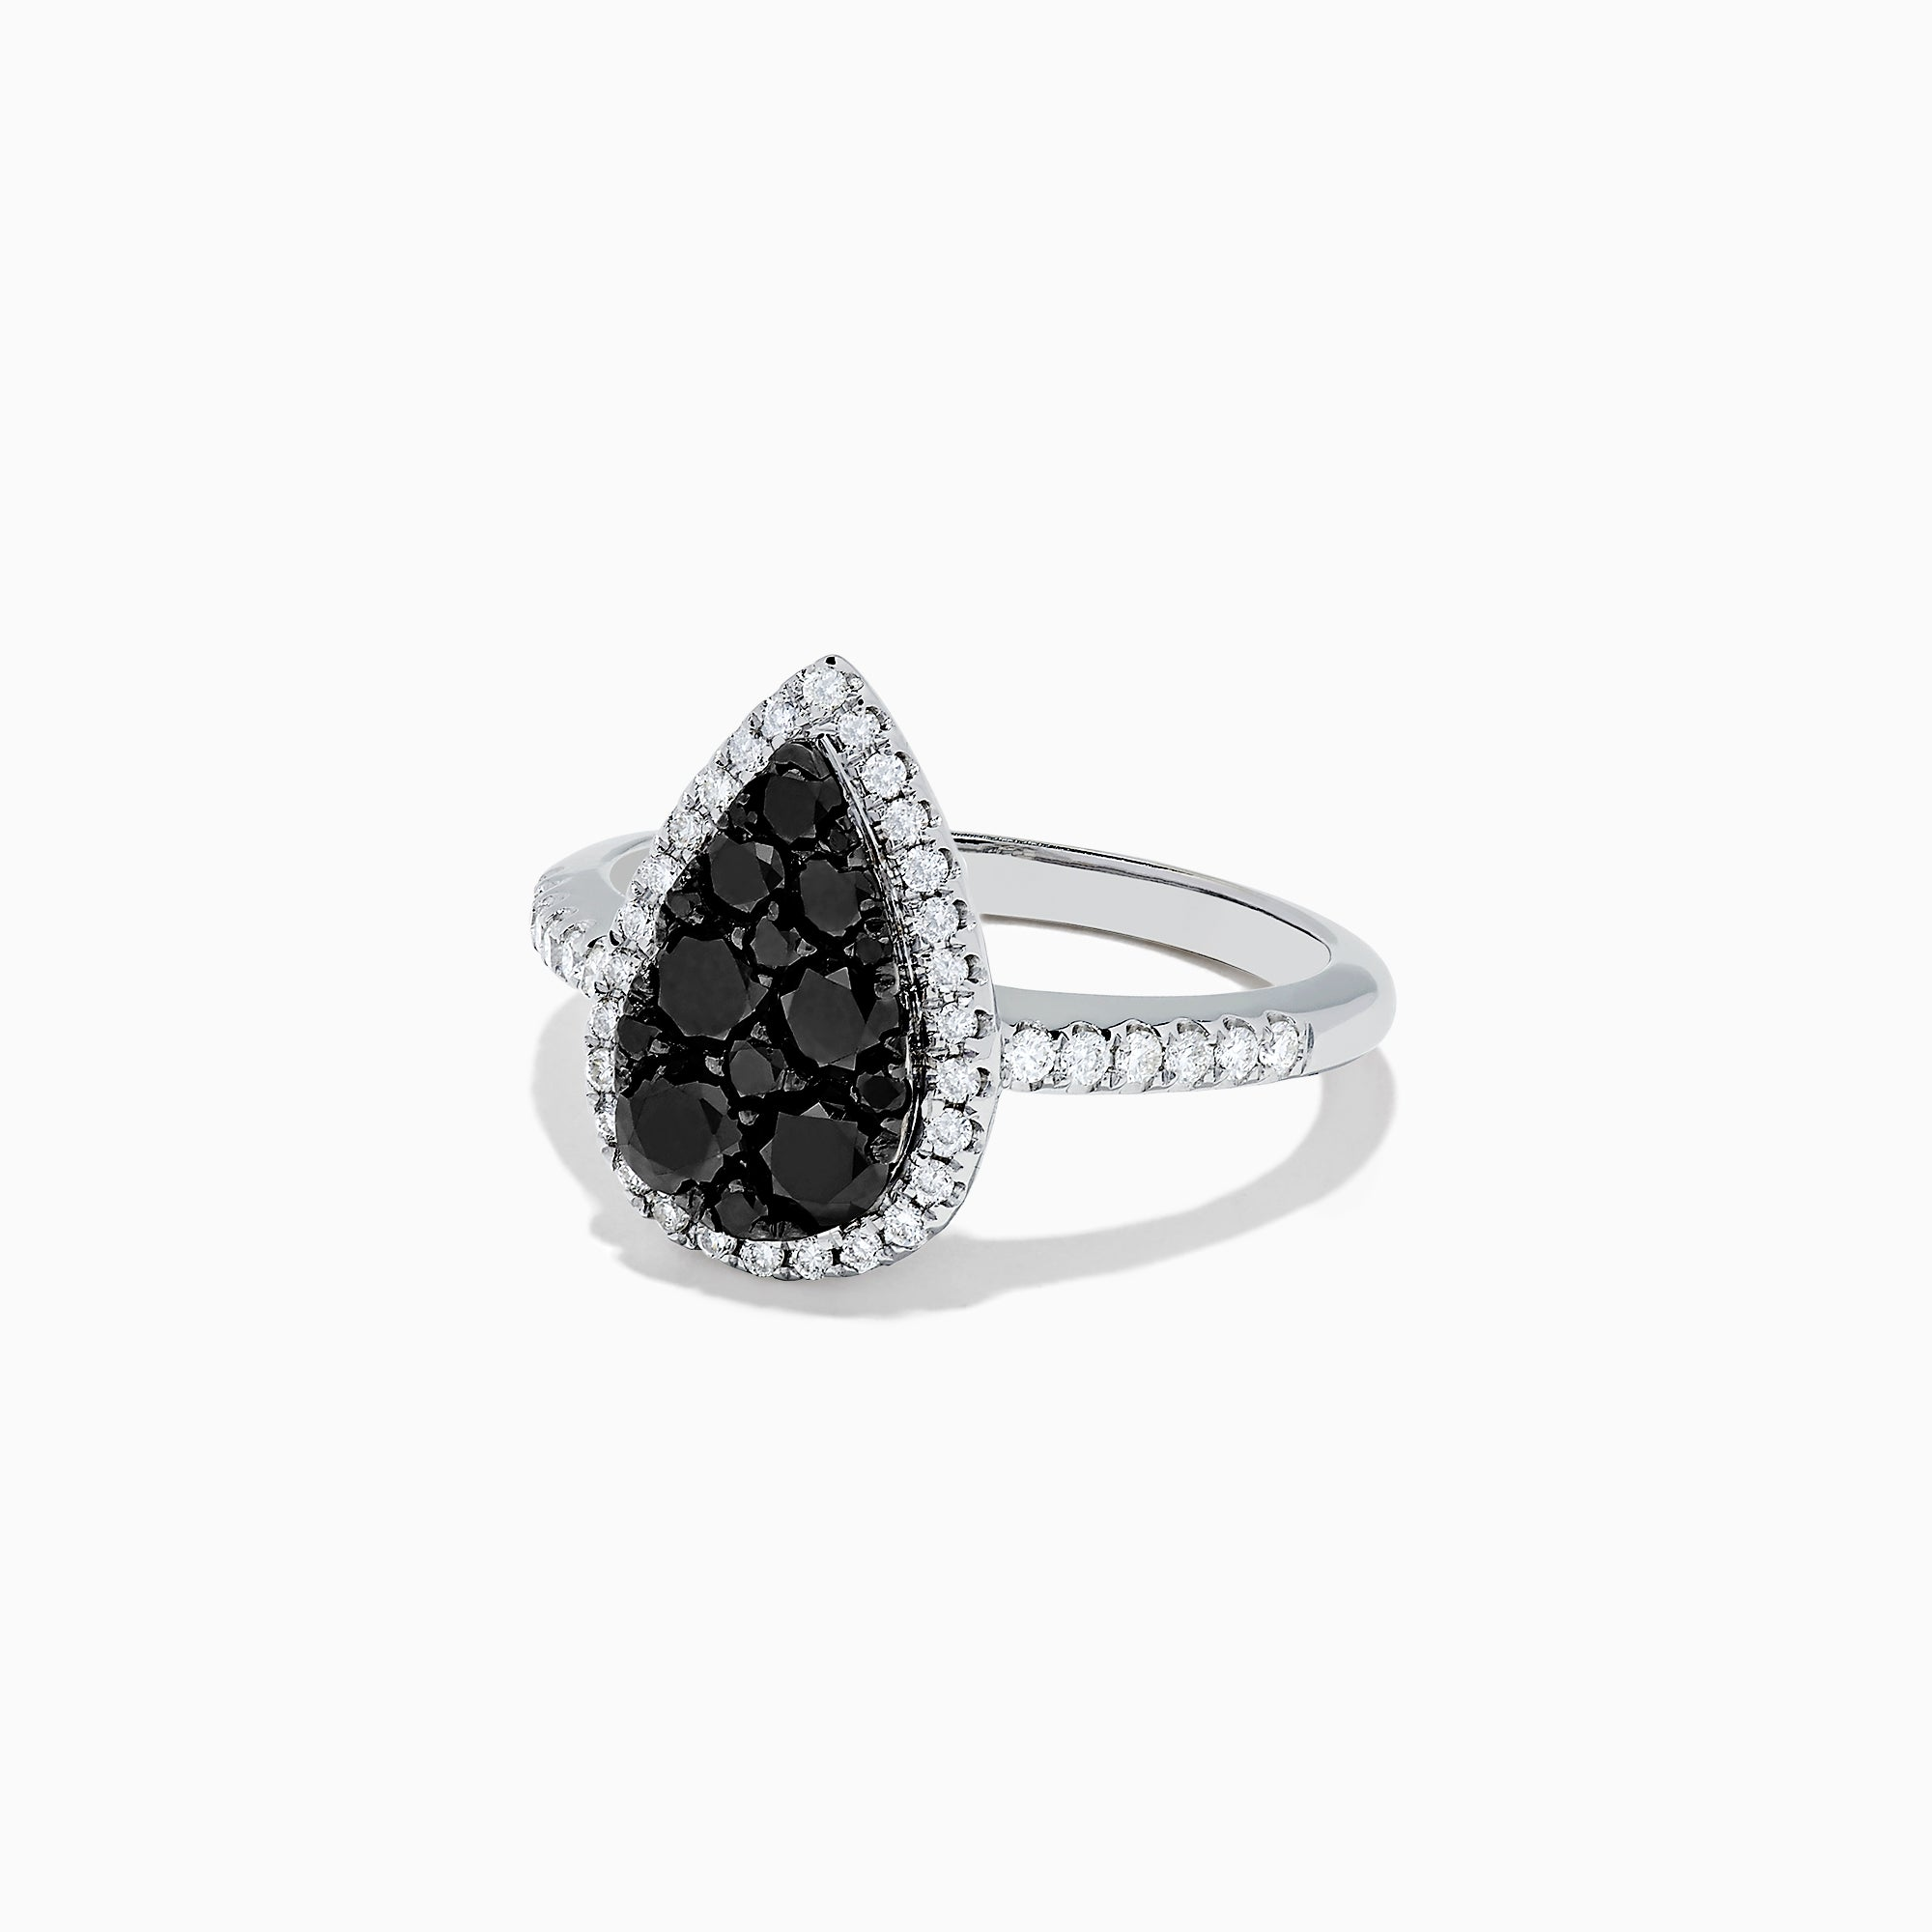 Effy 14K White Gold Black and White Diamond Pear Shaped Ring, 1.05 TCW